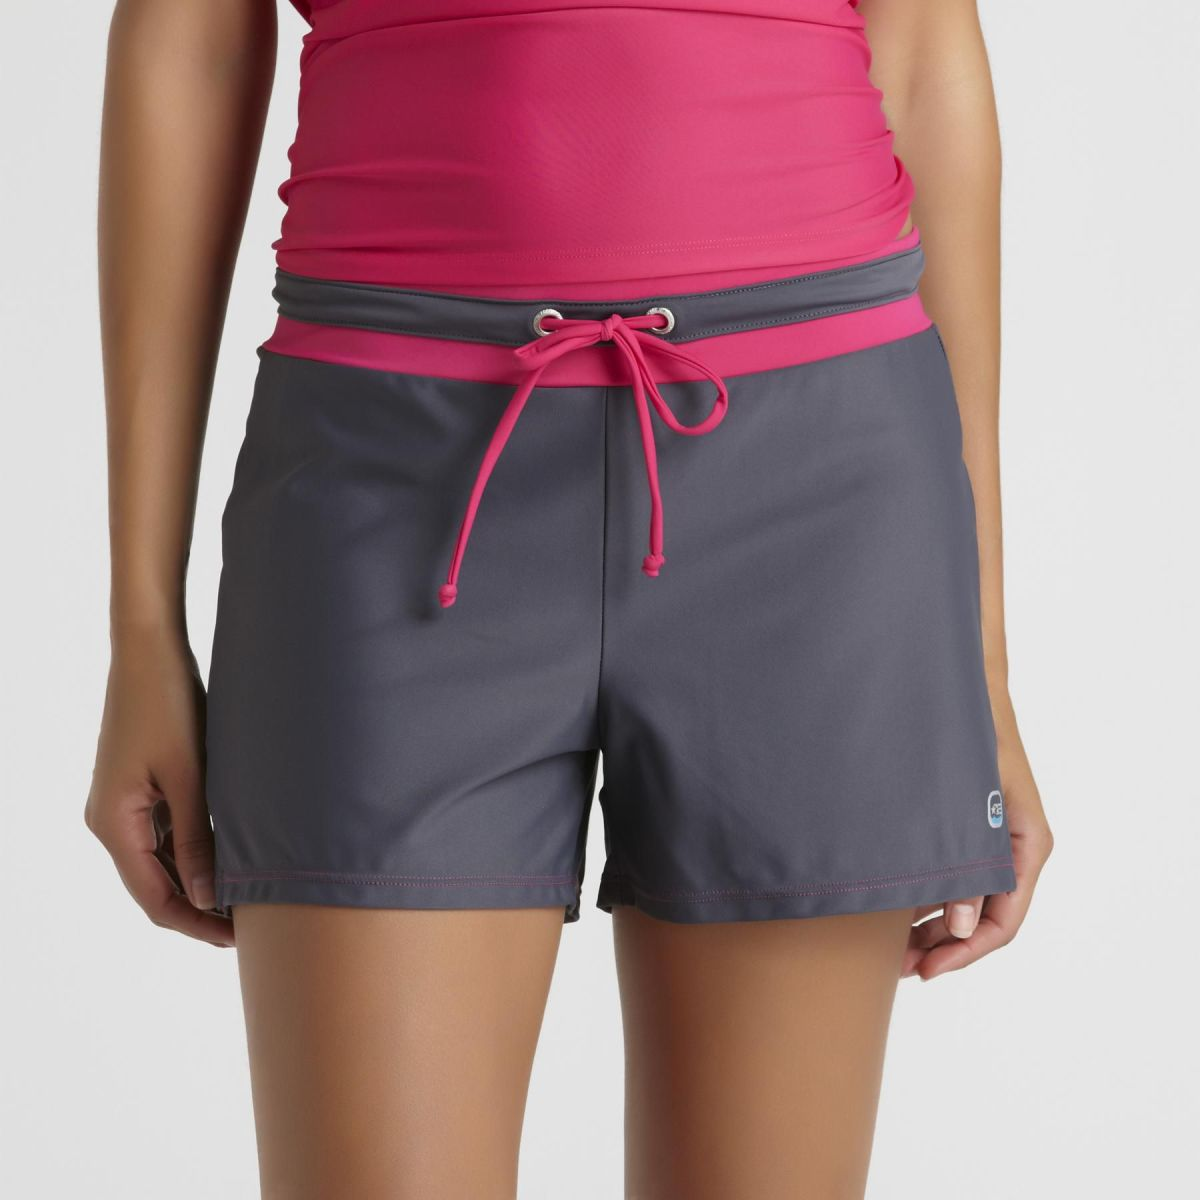 Draw String at the Waist Swim Short - Grey and Bright Pink Swim Short for Women